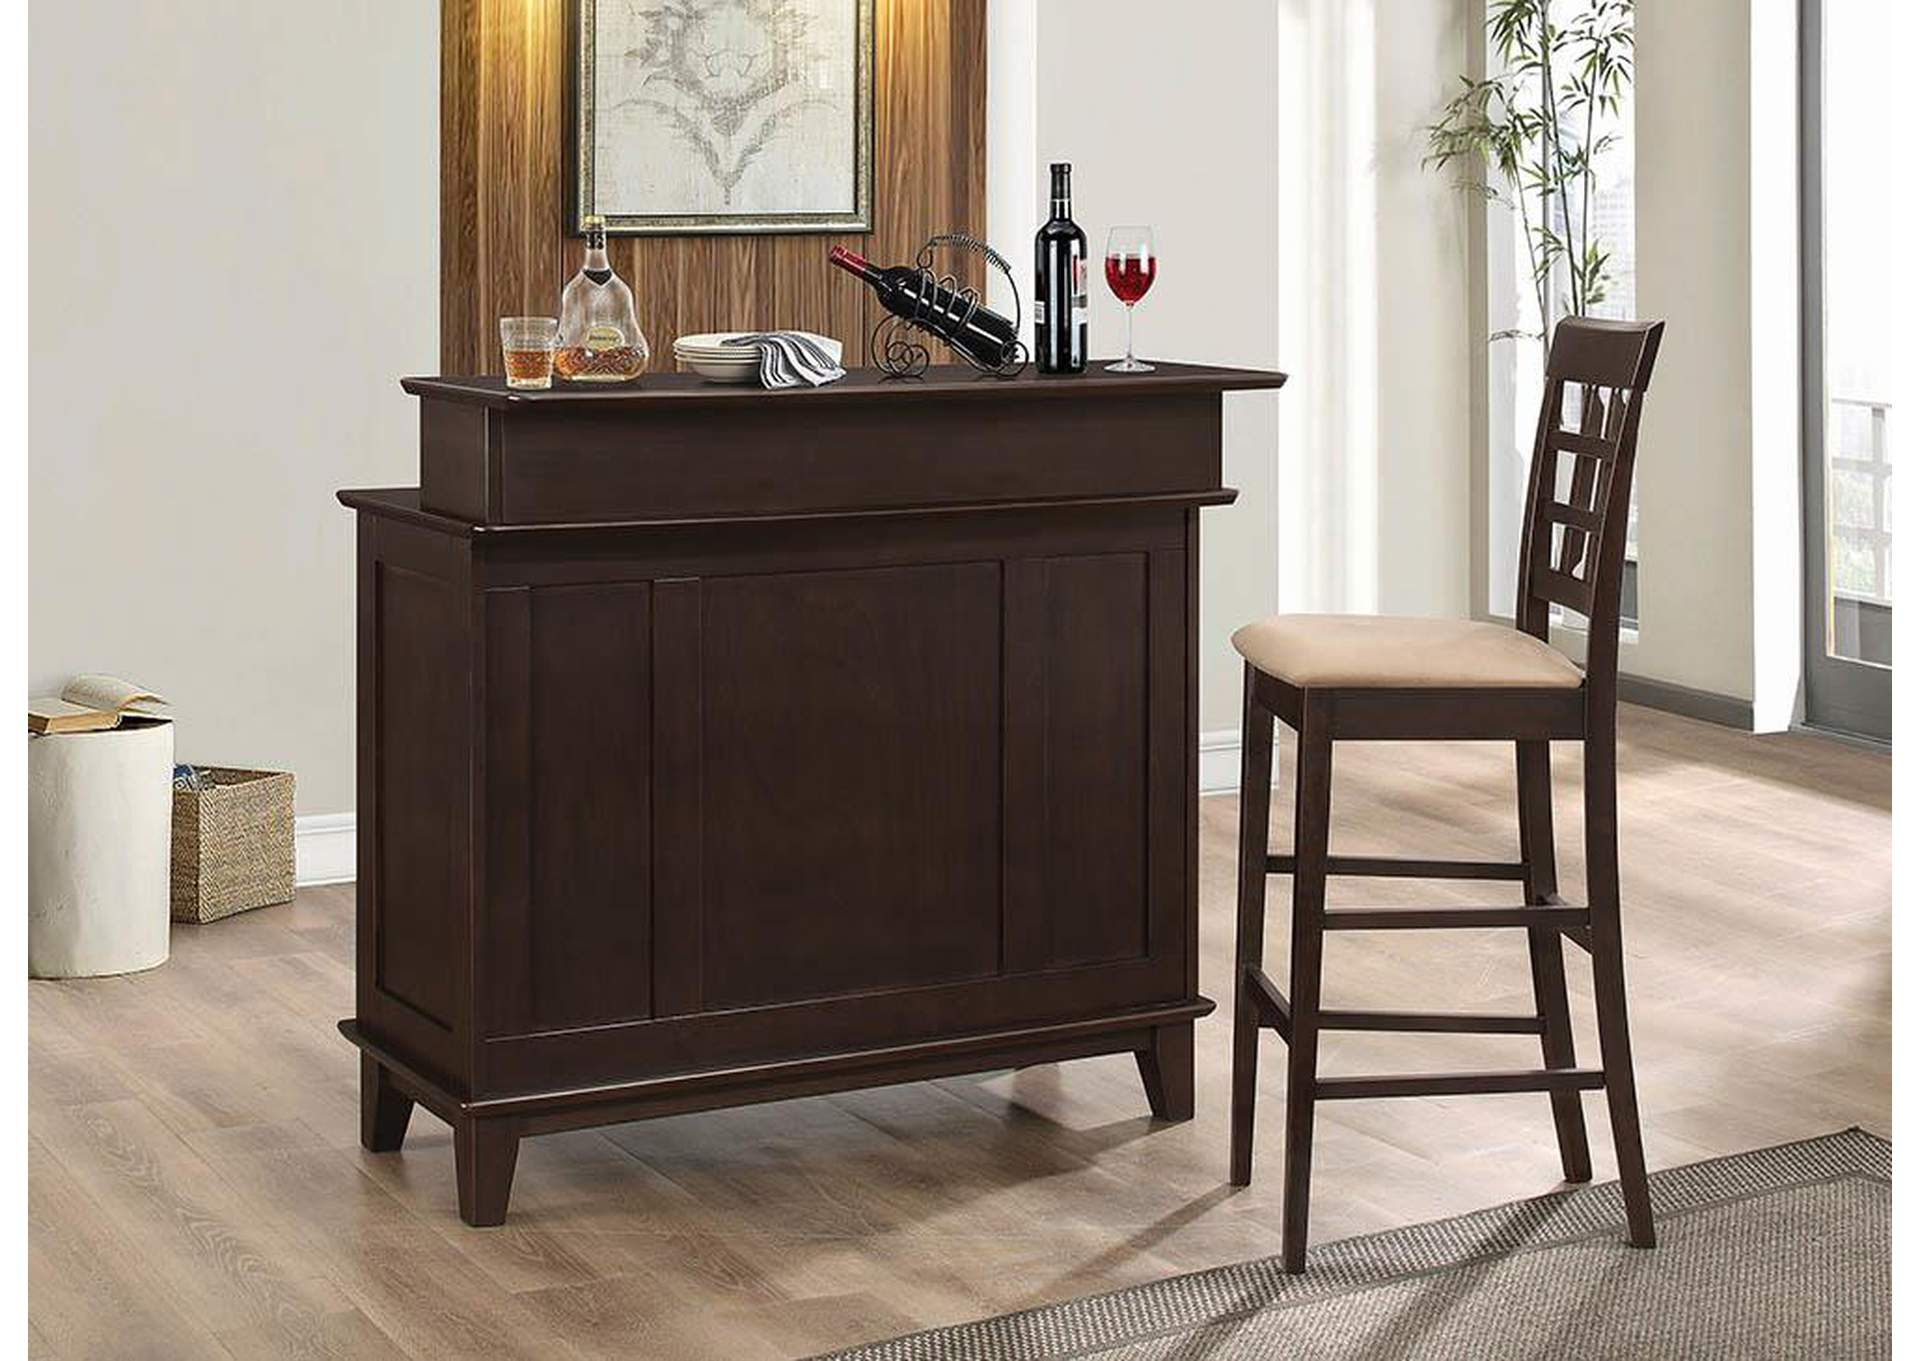 Affordable furniture houston bar unit for Cheap furniture houston